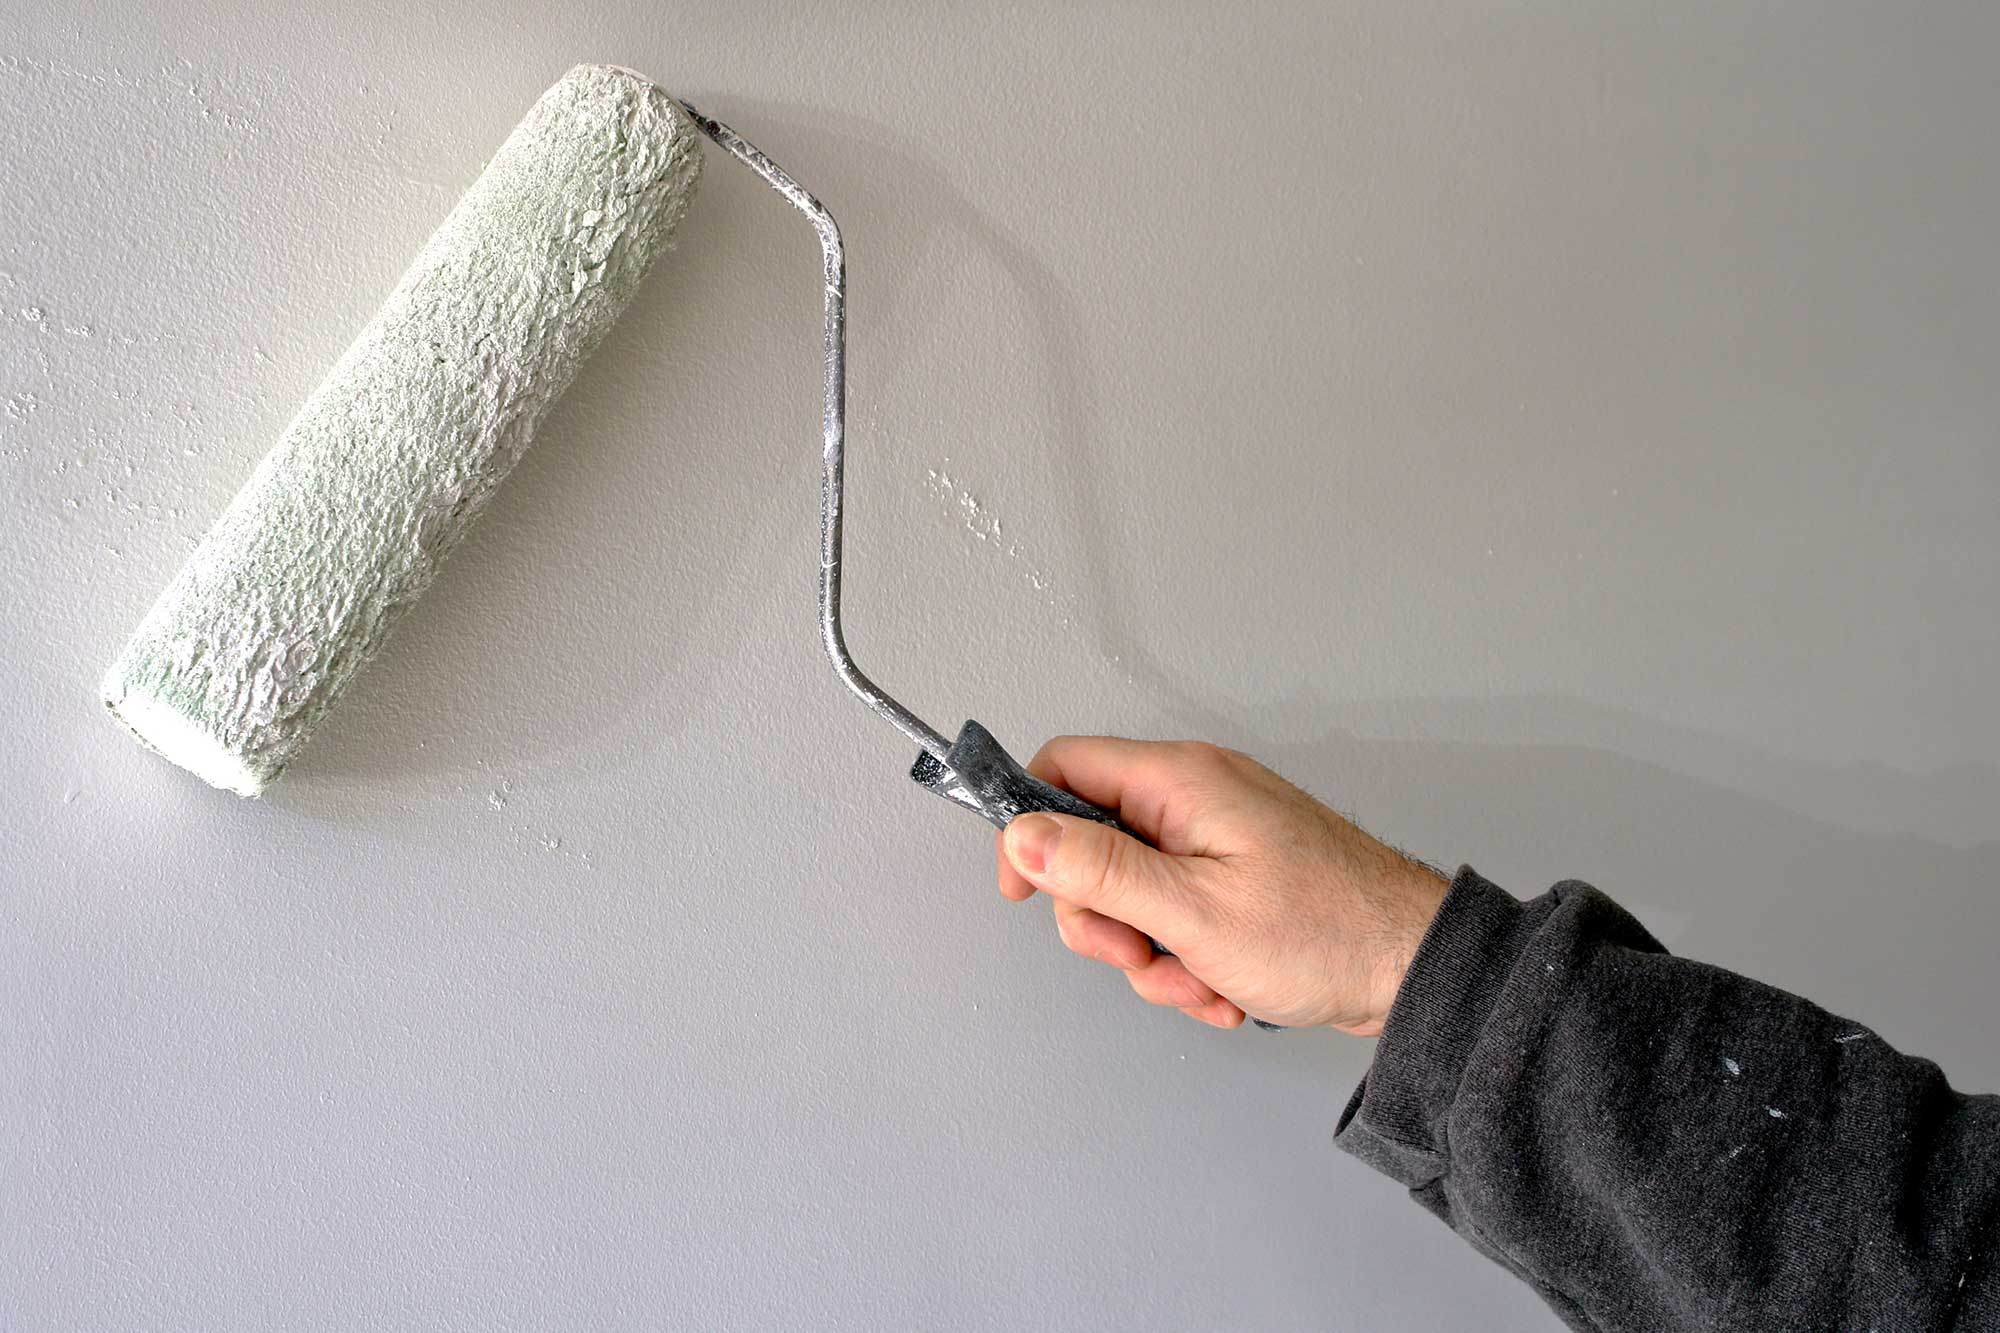 Man painting a wall with a roller